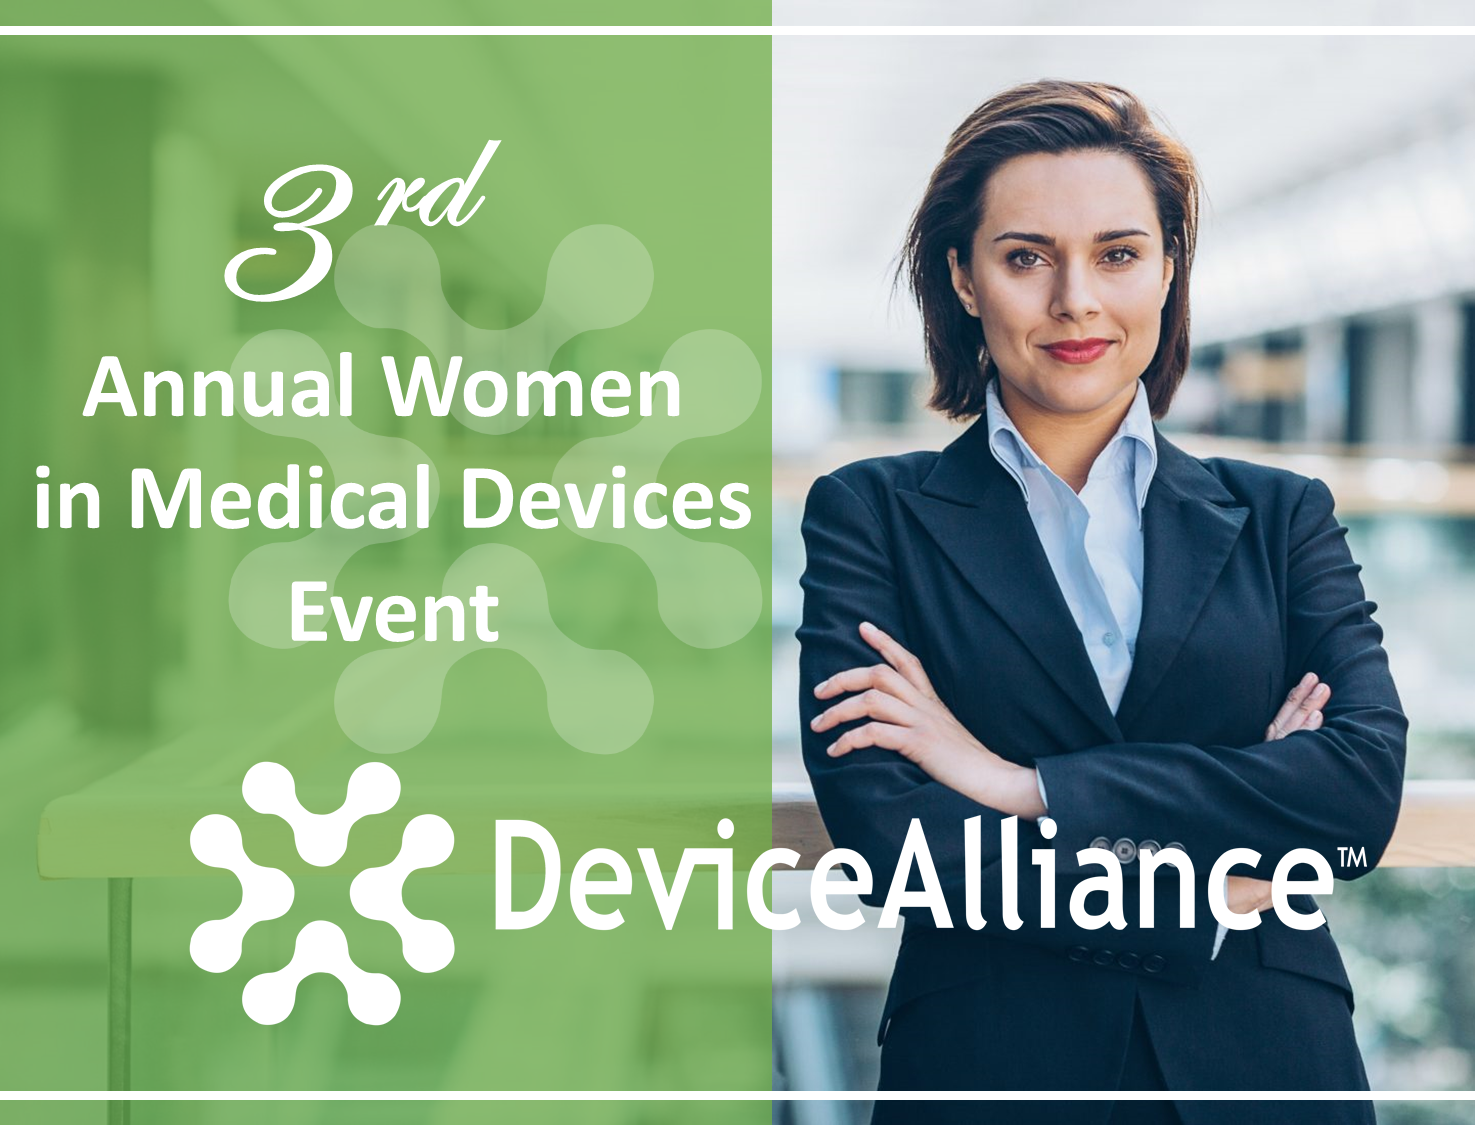 3rd Annual Women in Medical Devices